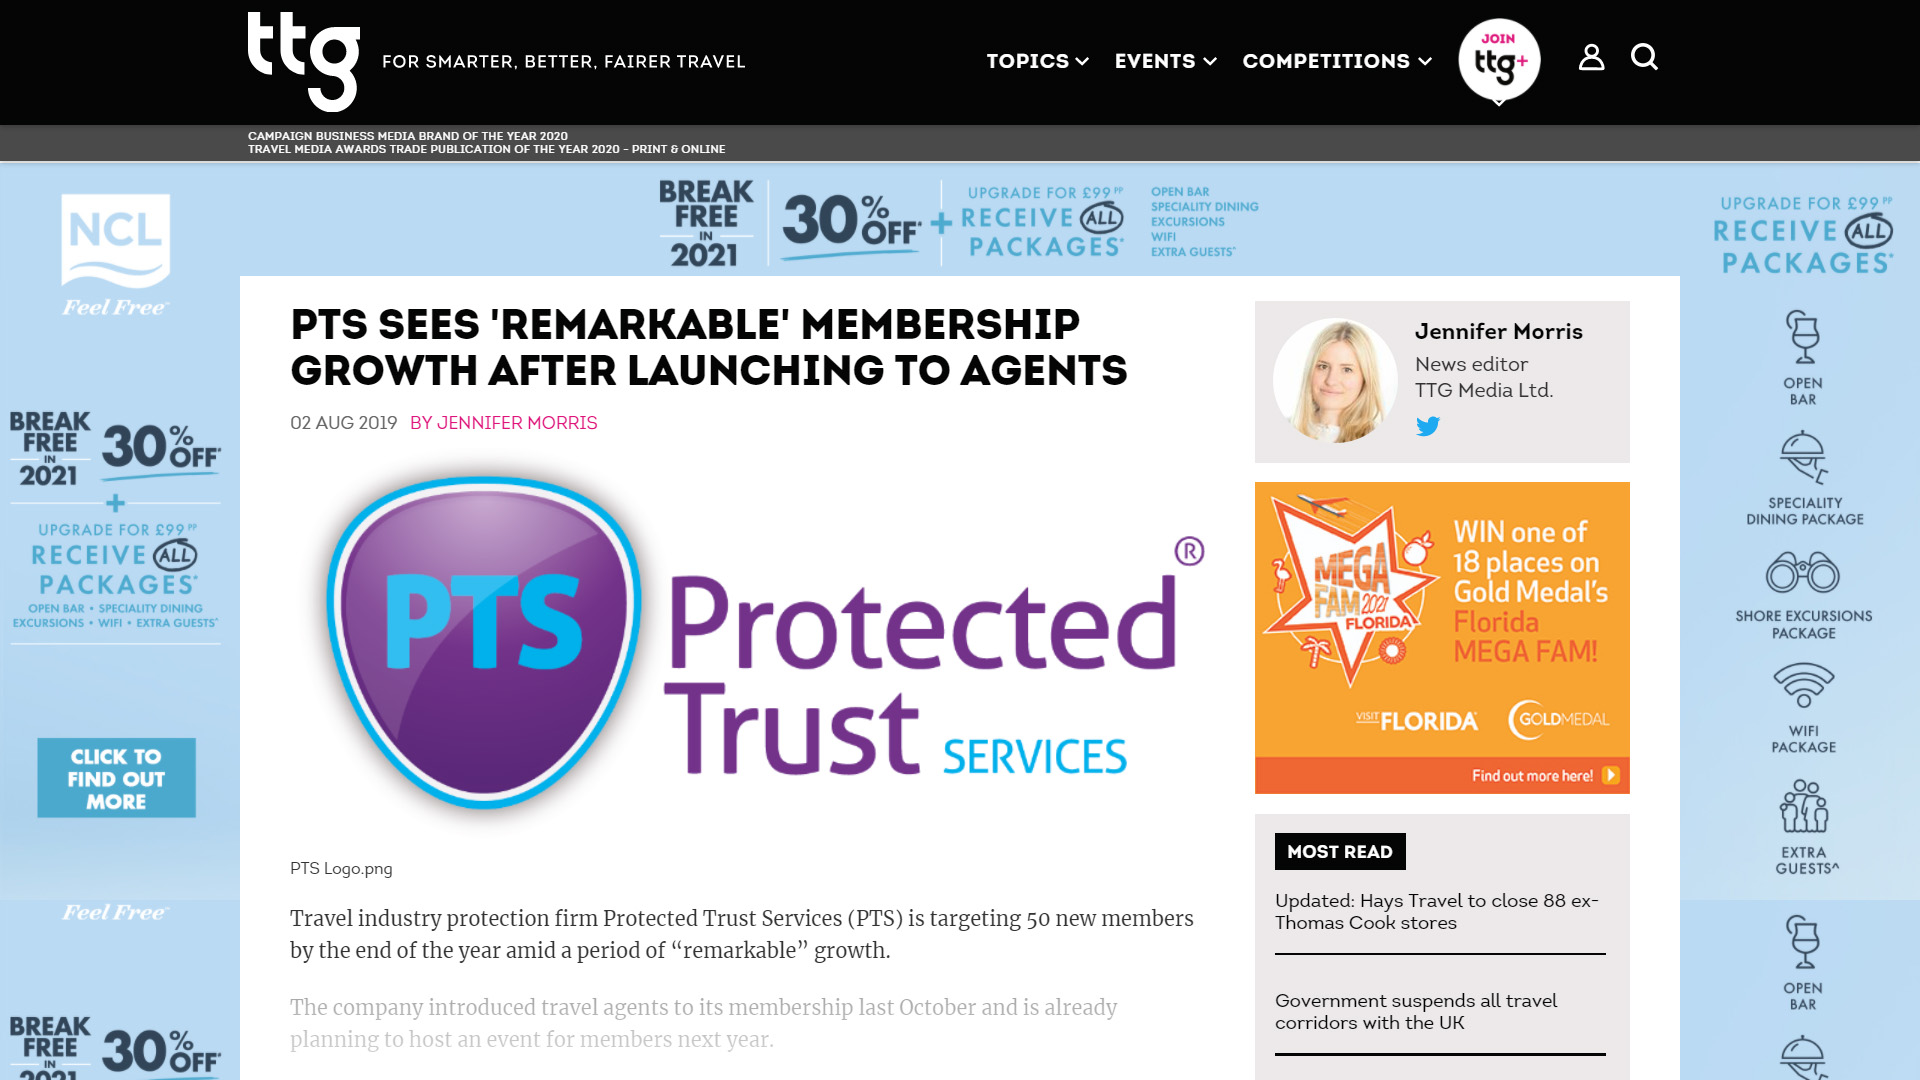 PTS Sees Remarkable Membership Growth After Launching to Agents